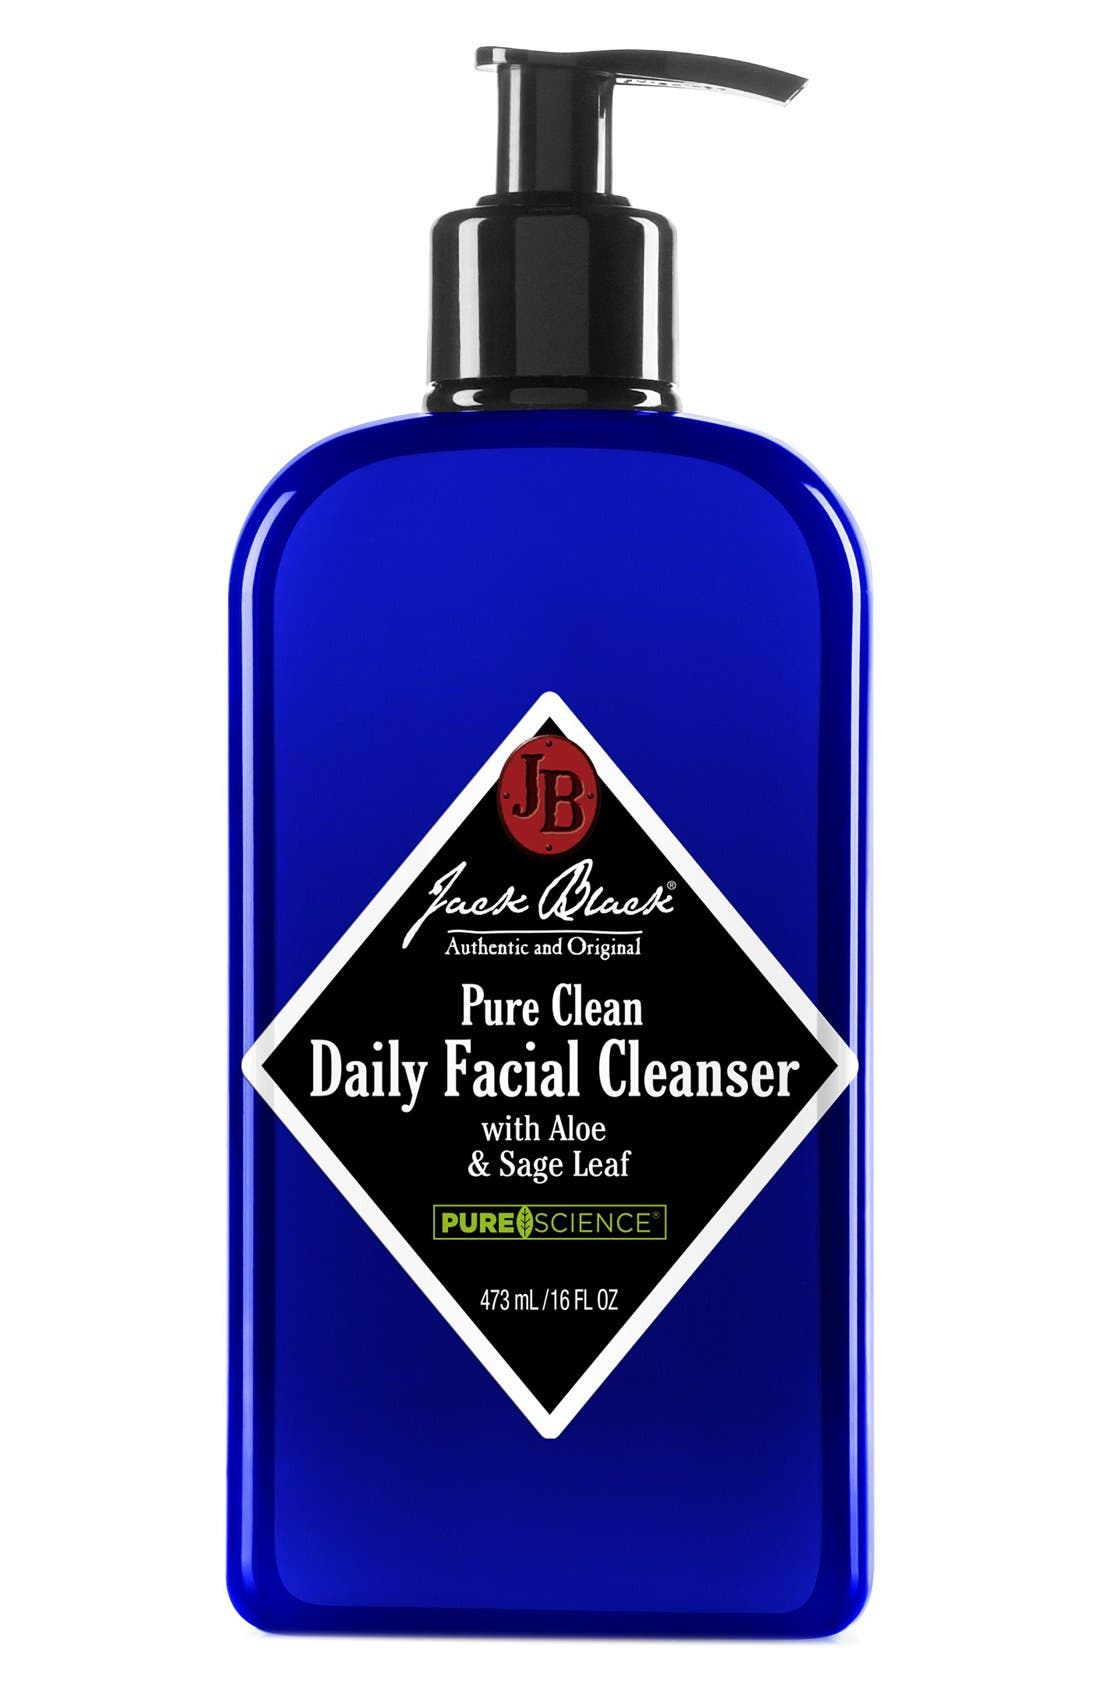 Jack Black 'Pure Clean' Daily Facial Cleanser (Jumbo Size) ($50 Value)